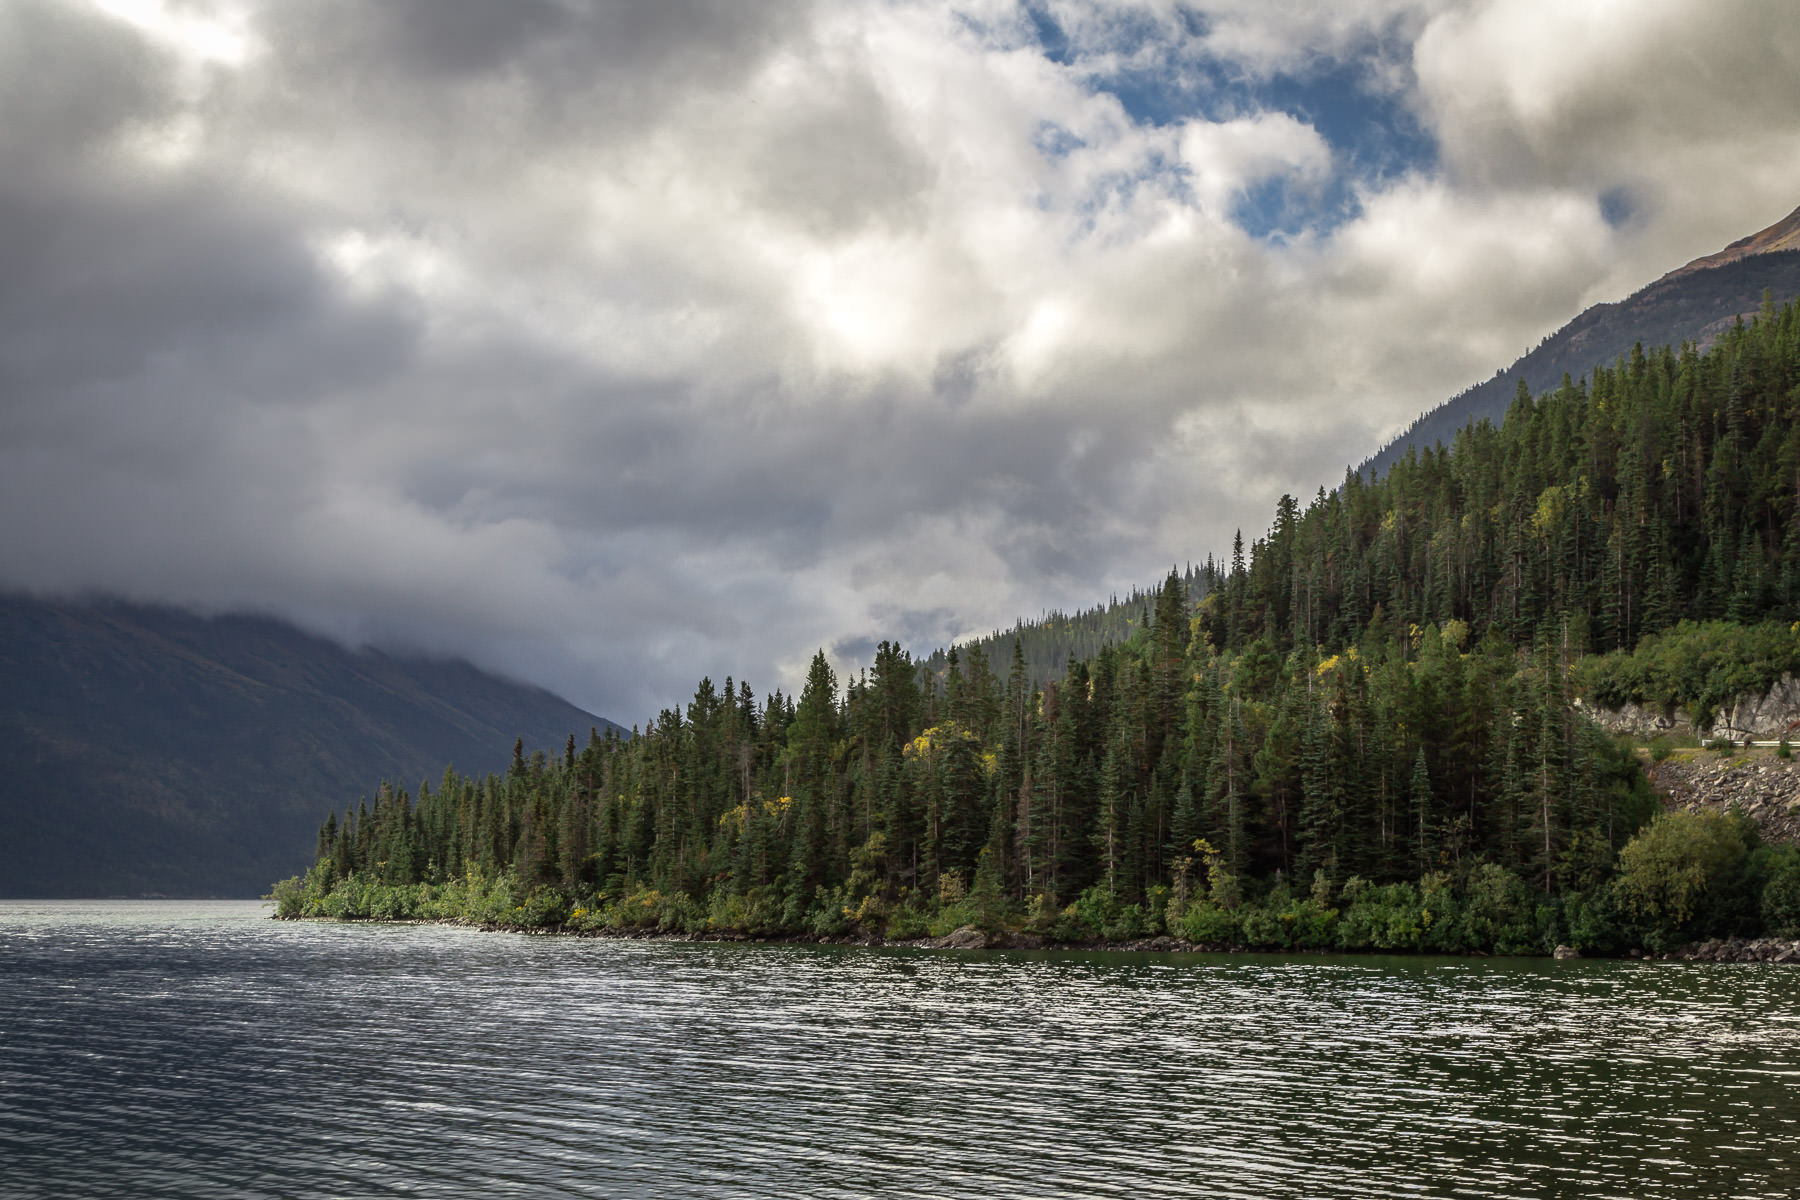 Low storm clouds roll in over the mountains surrounding British Columbia, Canada's Tutshi Lake.